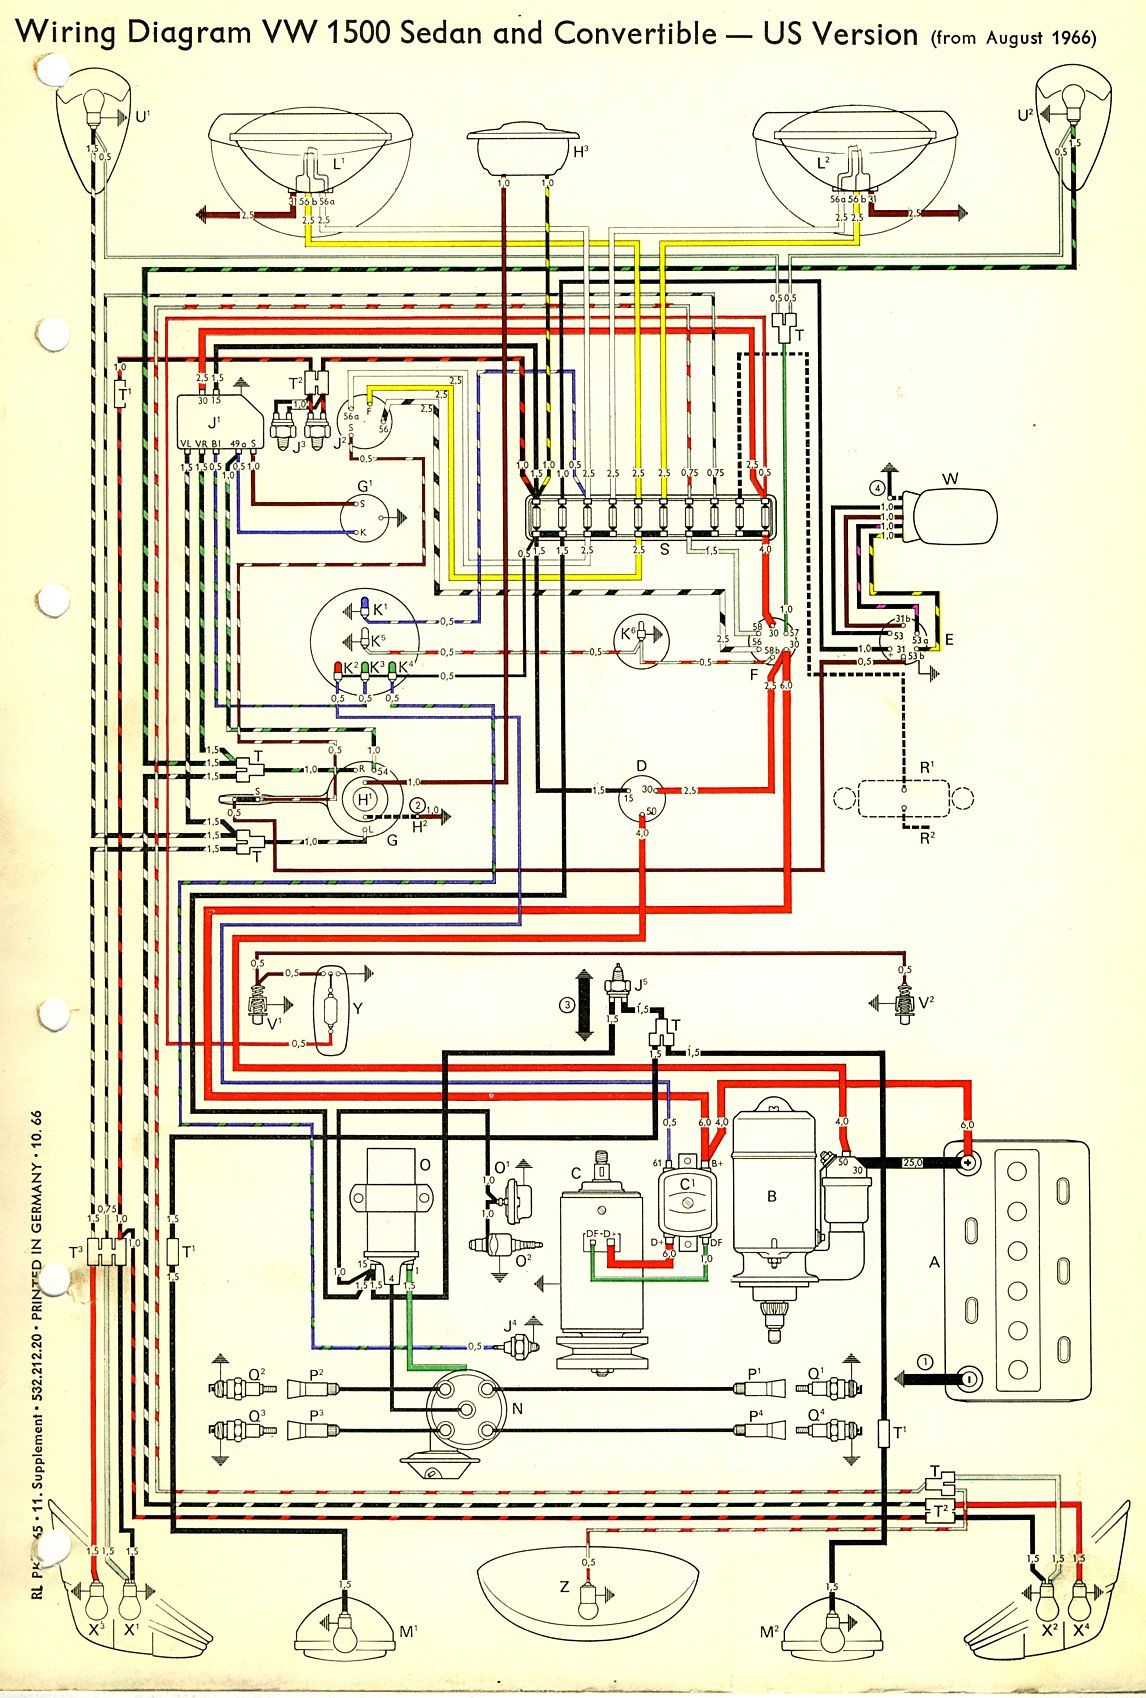 Dune Buggy Turn Signal Wiring Diagram Basic Circuit Vw Trusted 1967 Beetle Usa Thegoldenbug Com Best Rh Pinterest 1968 Systems